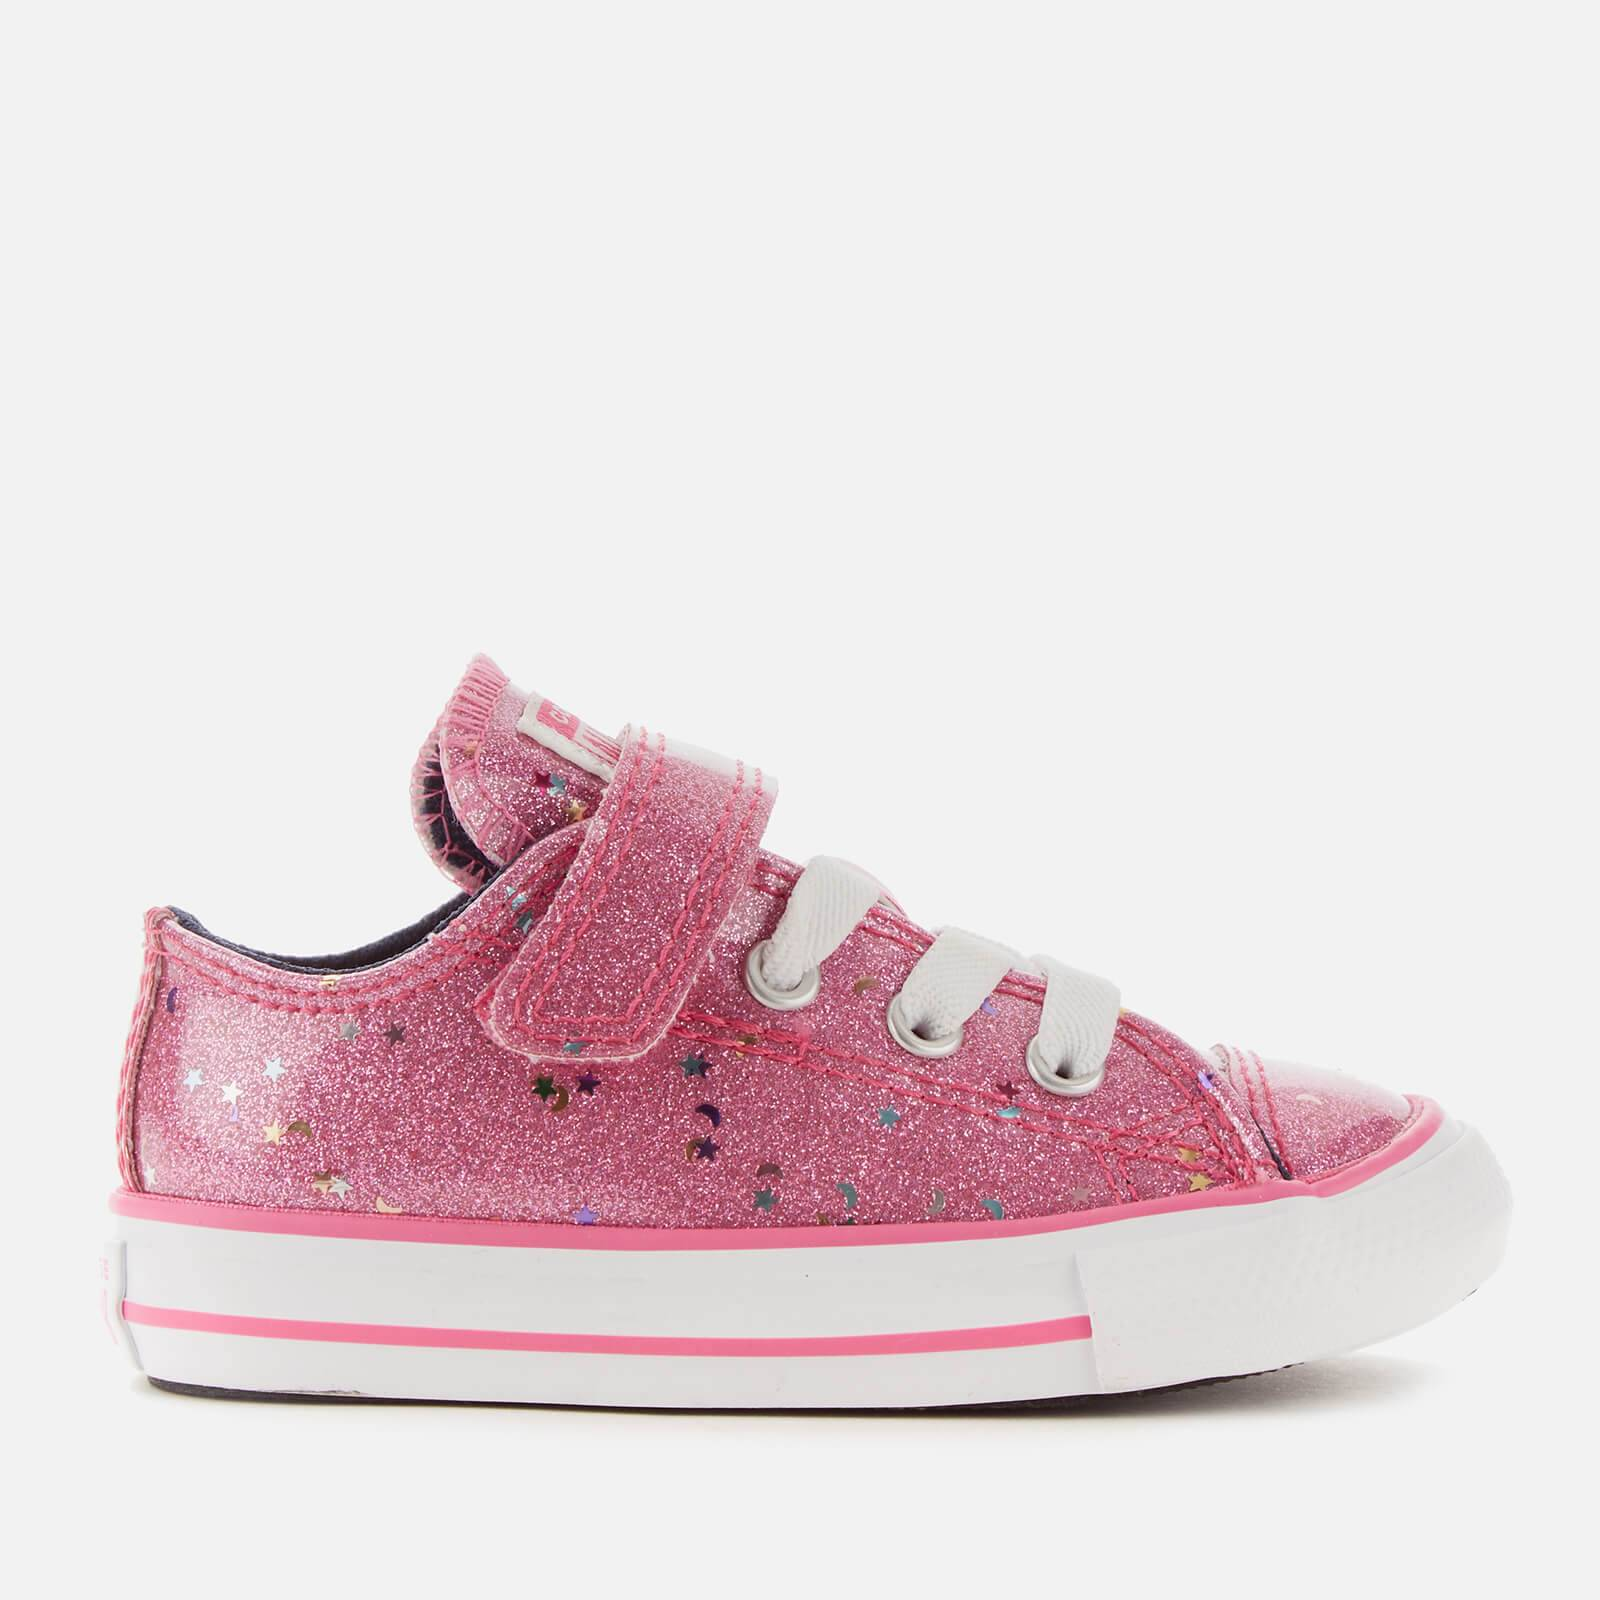 Converse Toddlers' Chuck Taylor All Star 1V Galaxy Glimmer Ox Trainers - Mod Pink/Obsidian/White - UK 5 Toddler - Pink